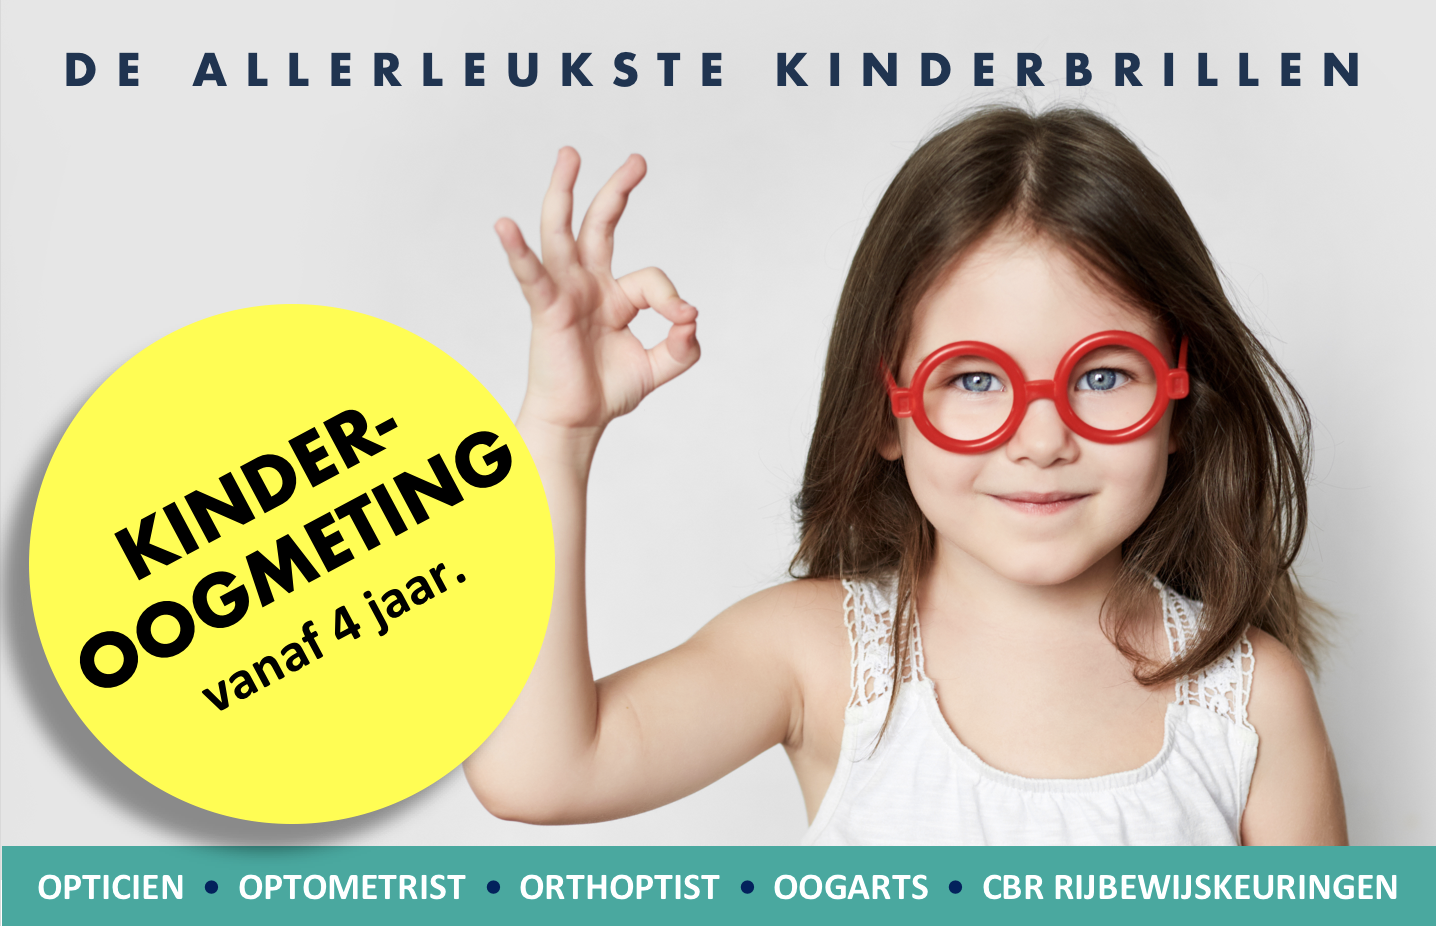 07ef2ede2990e4 20 sep Kinderbrillen en oogmeting